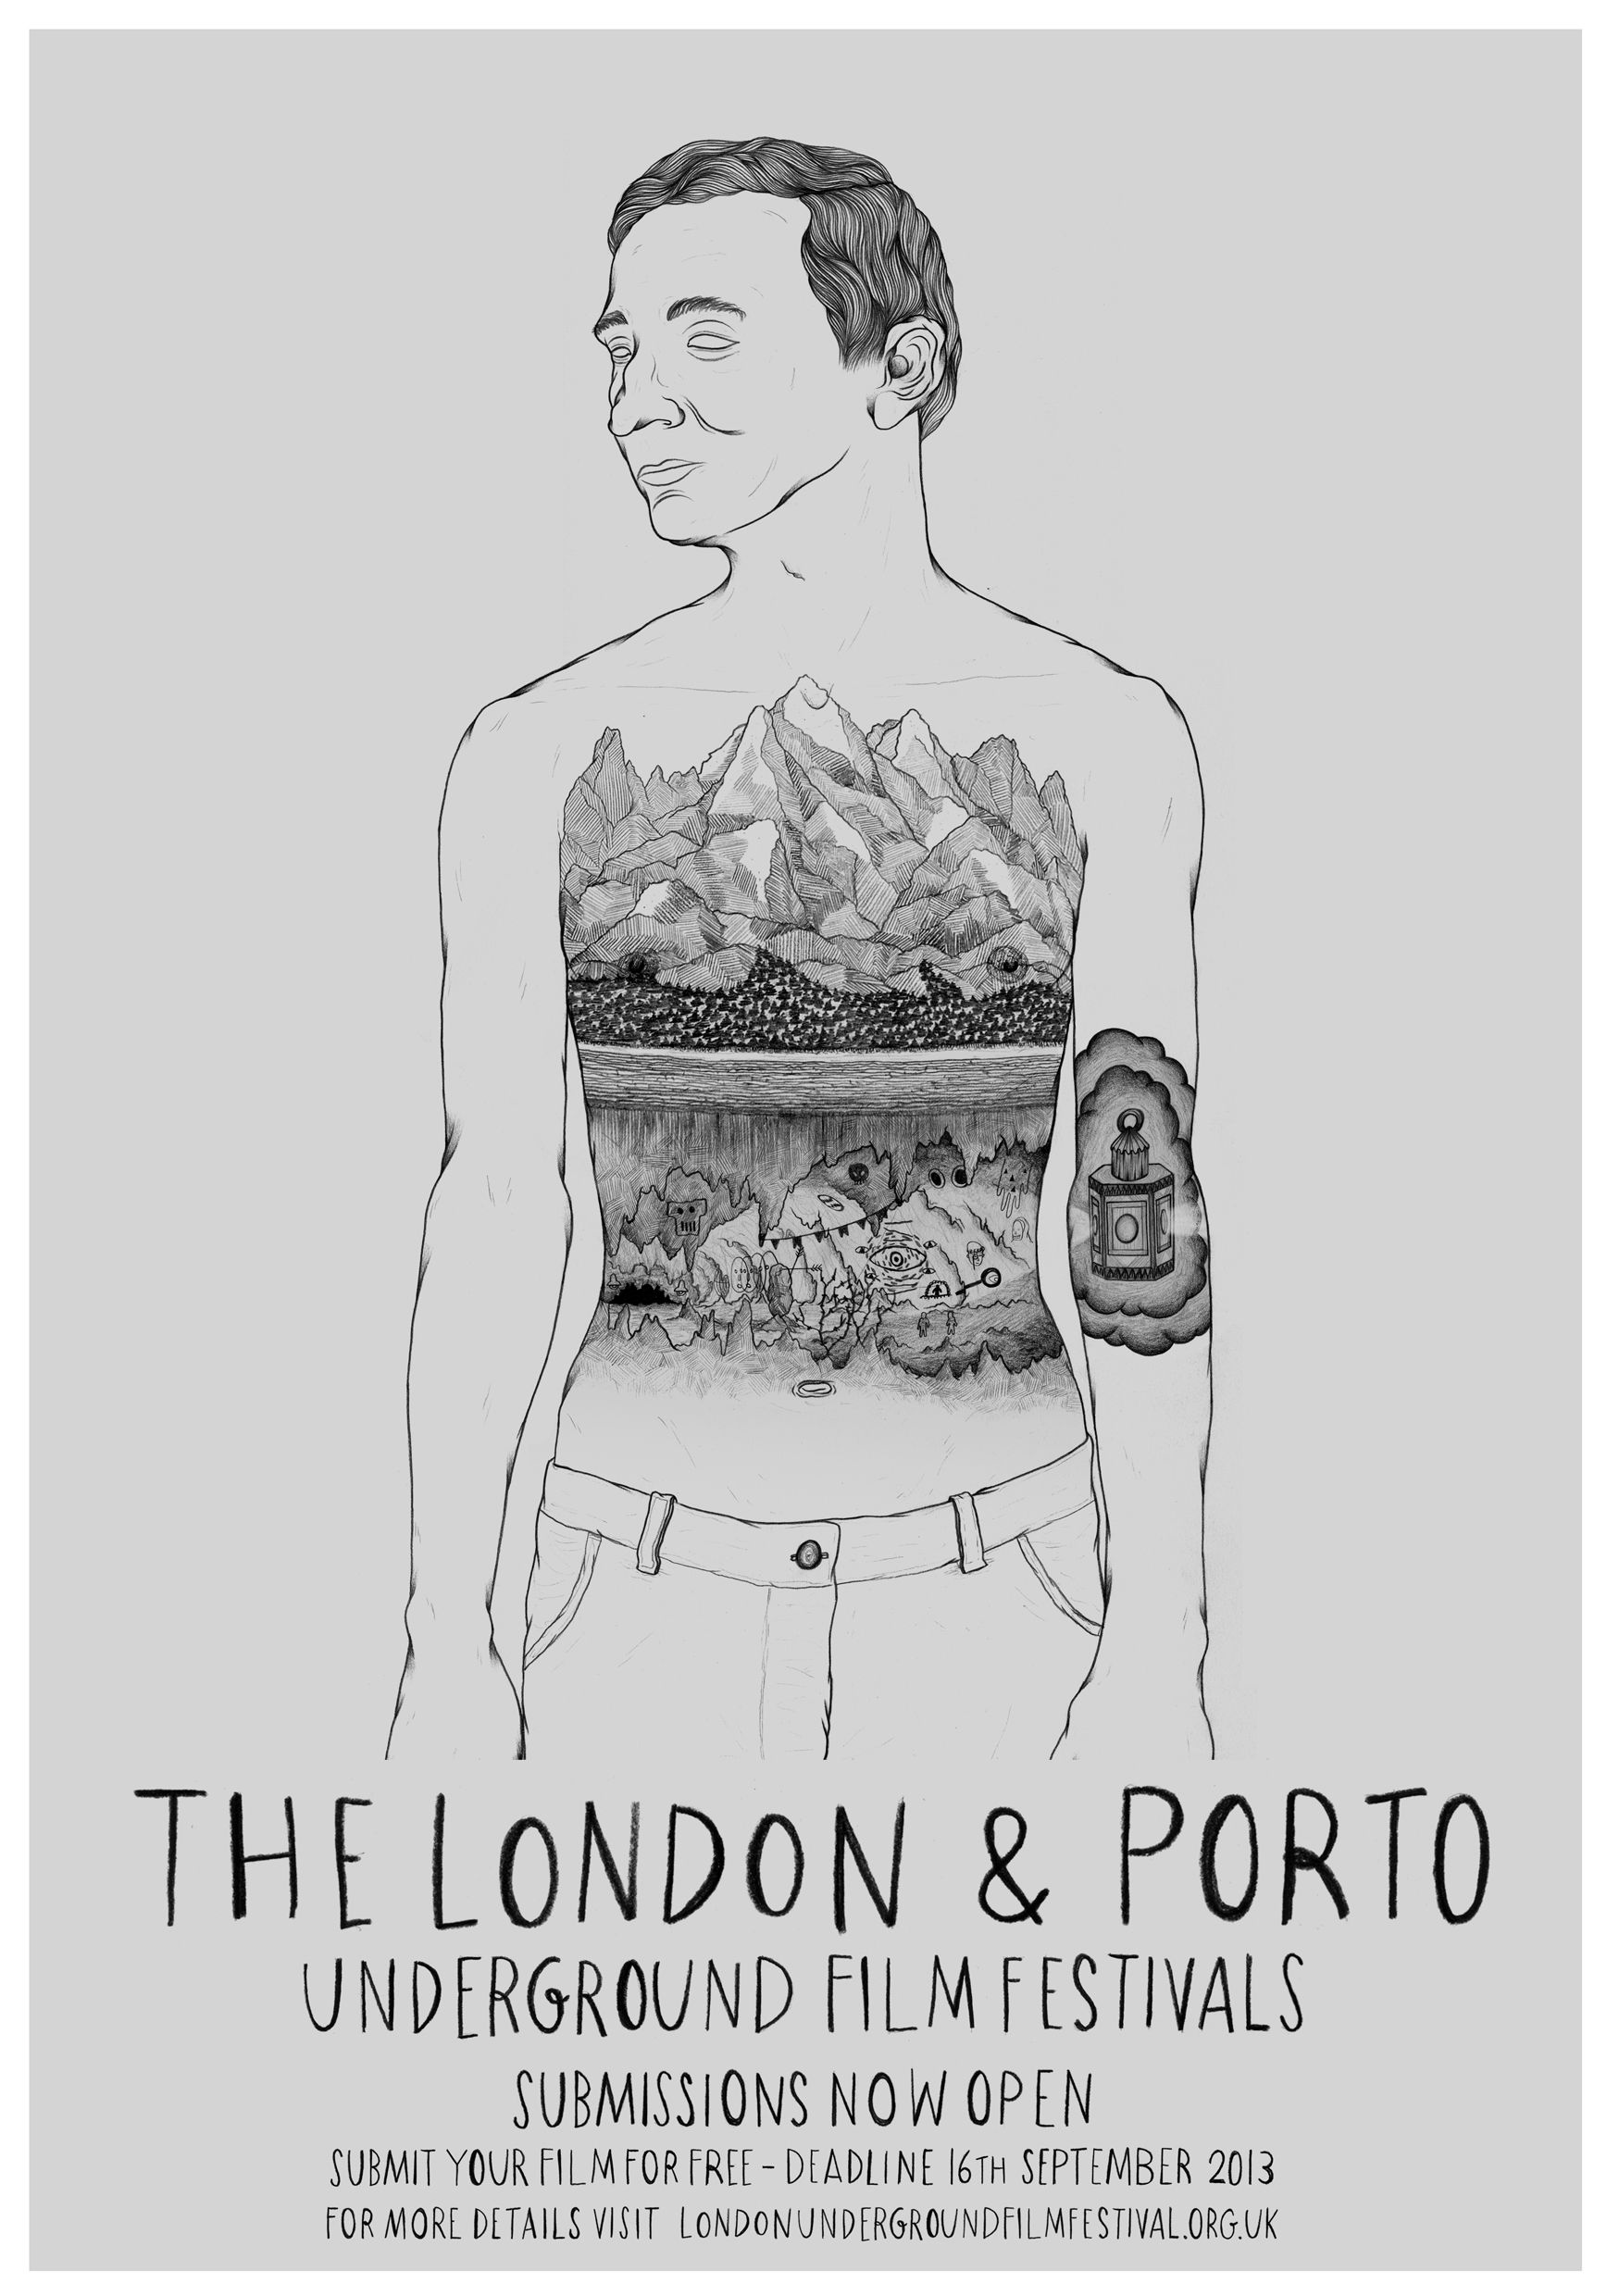 The London & Porto Underground Film Festival | Film Festival